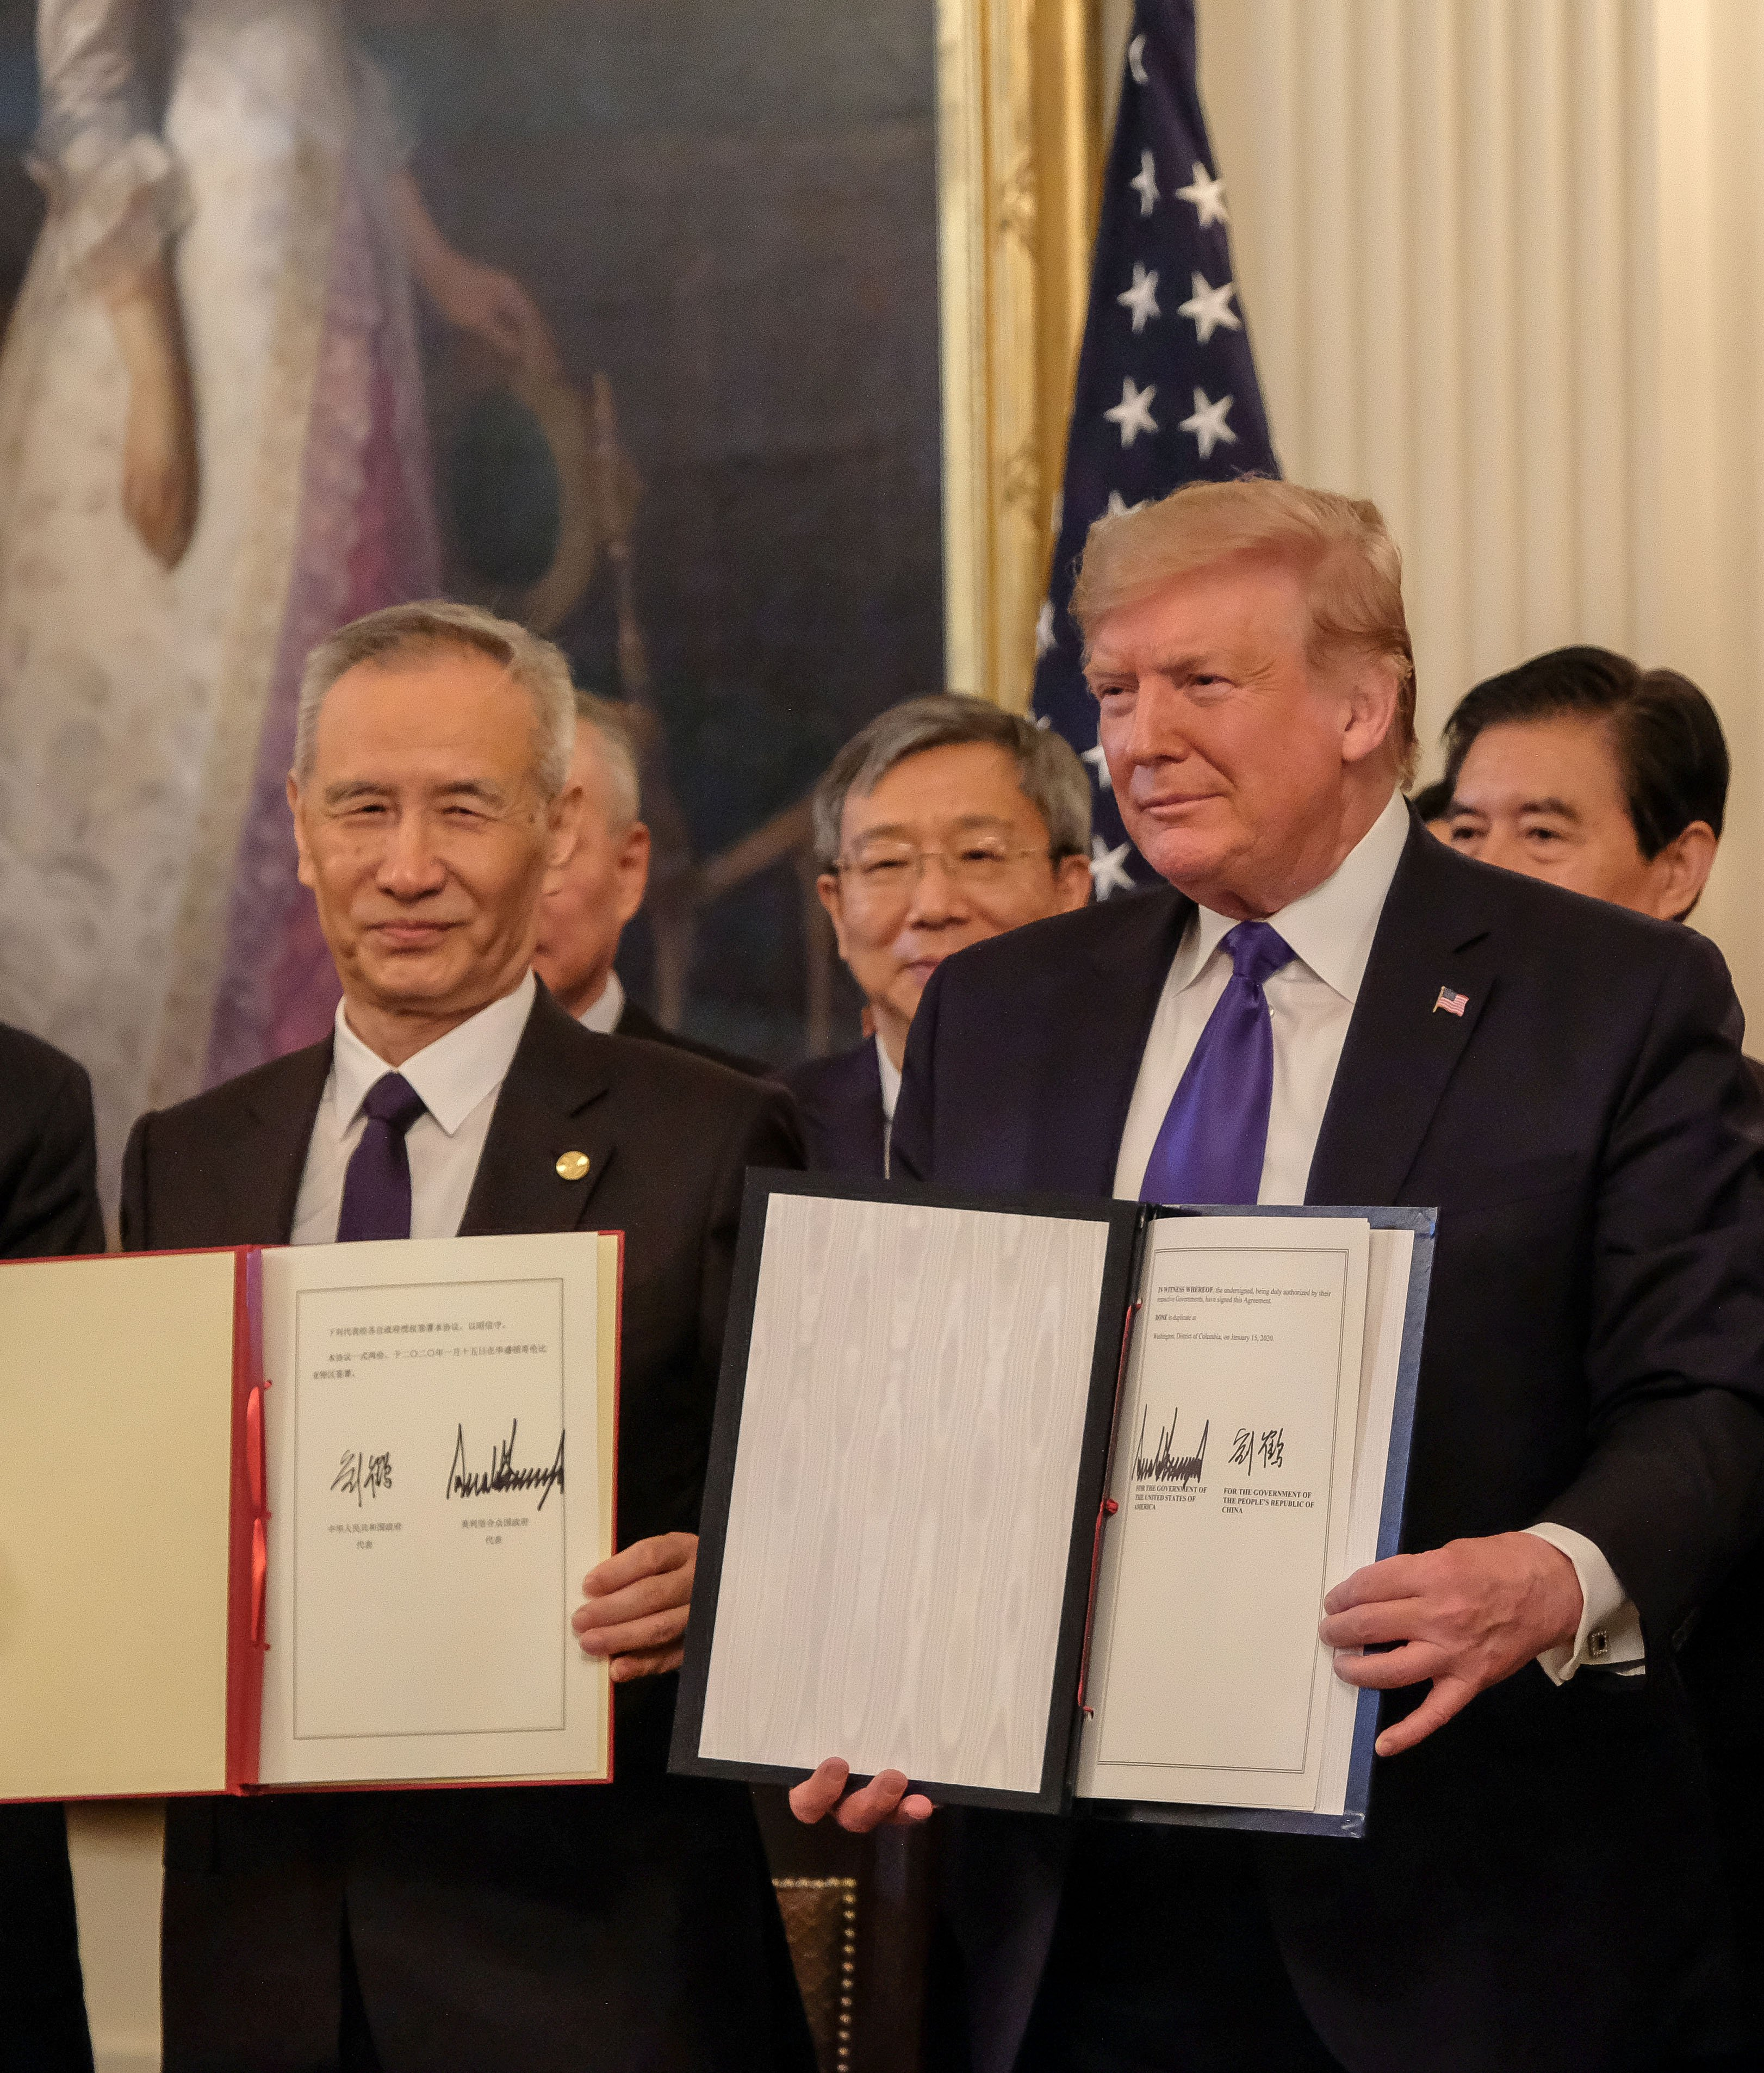 Top U.S. and China trade negotiators have agreed to advance plans laid out in the phase one trade deal despite the coronavirus crisis.